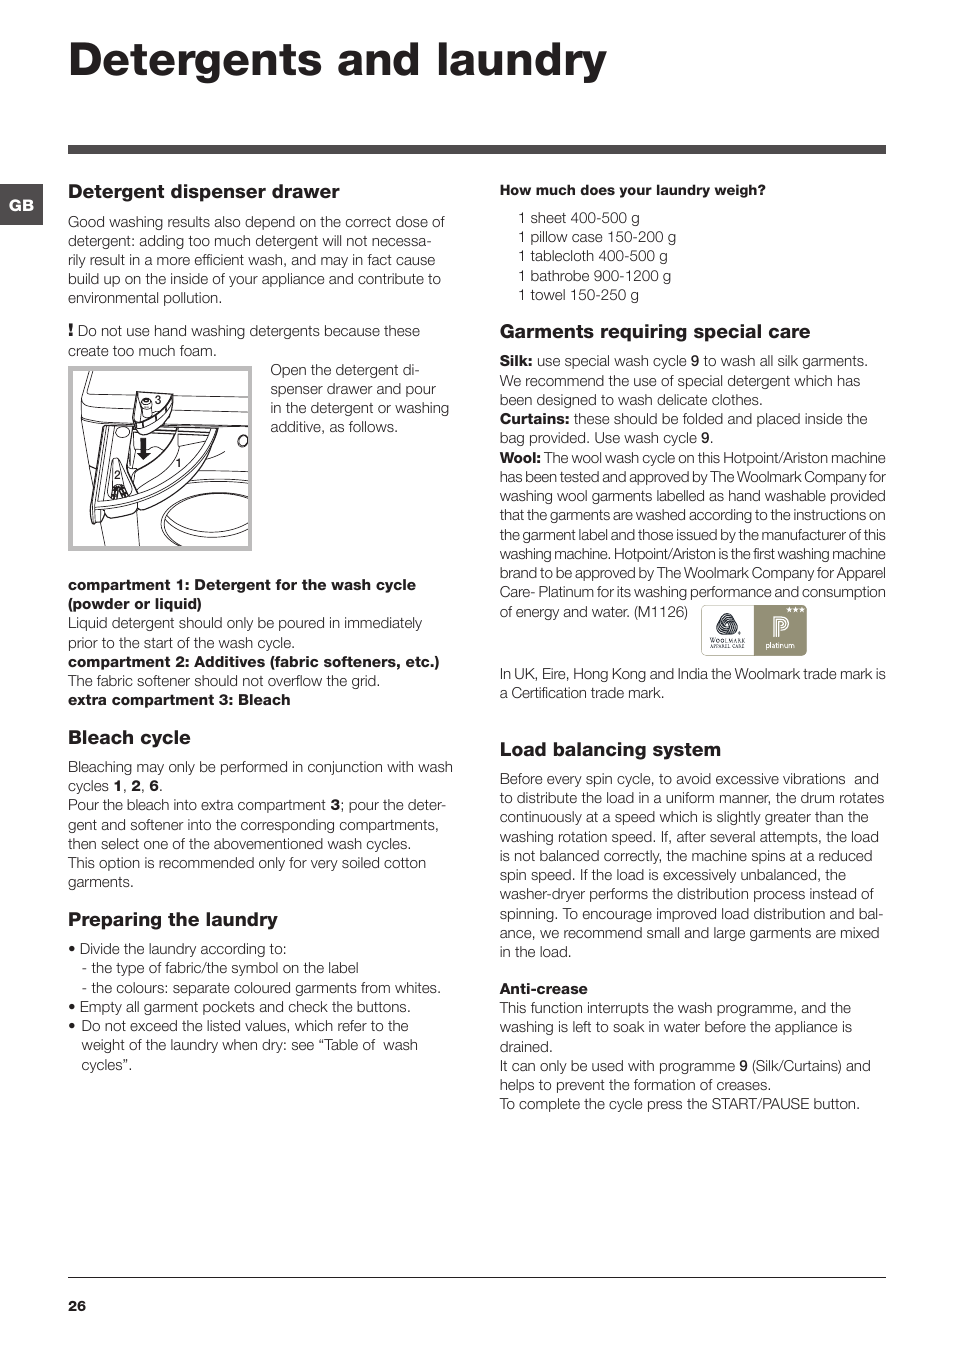 Detergents And Laundry Hotpoint Ariston Cawd 129 Eu User Manual